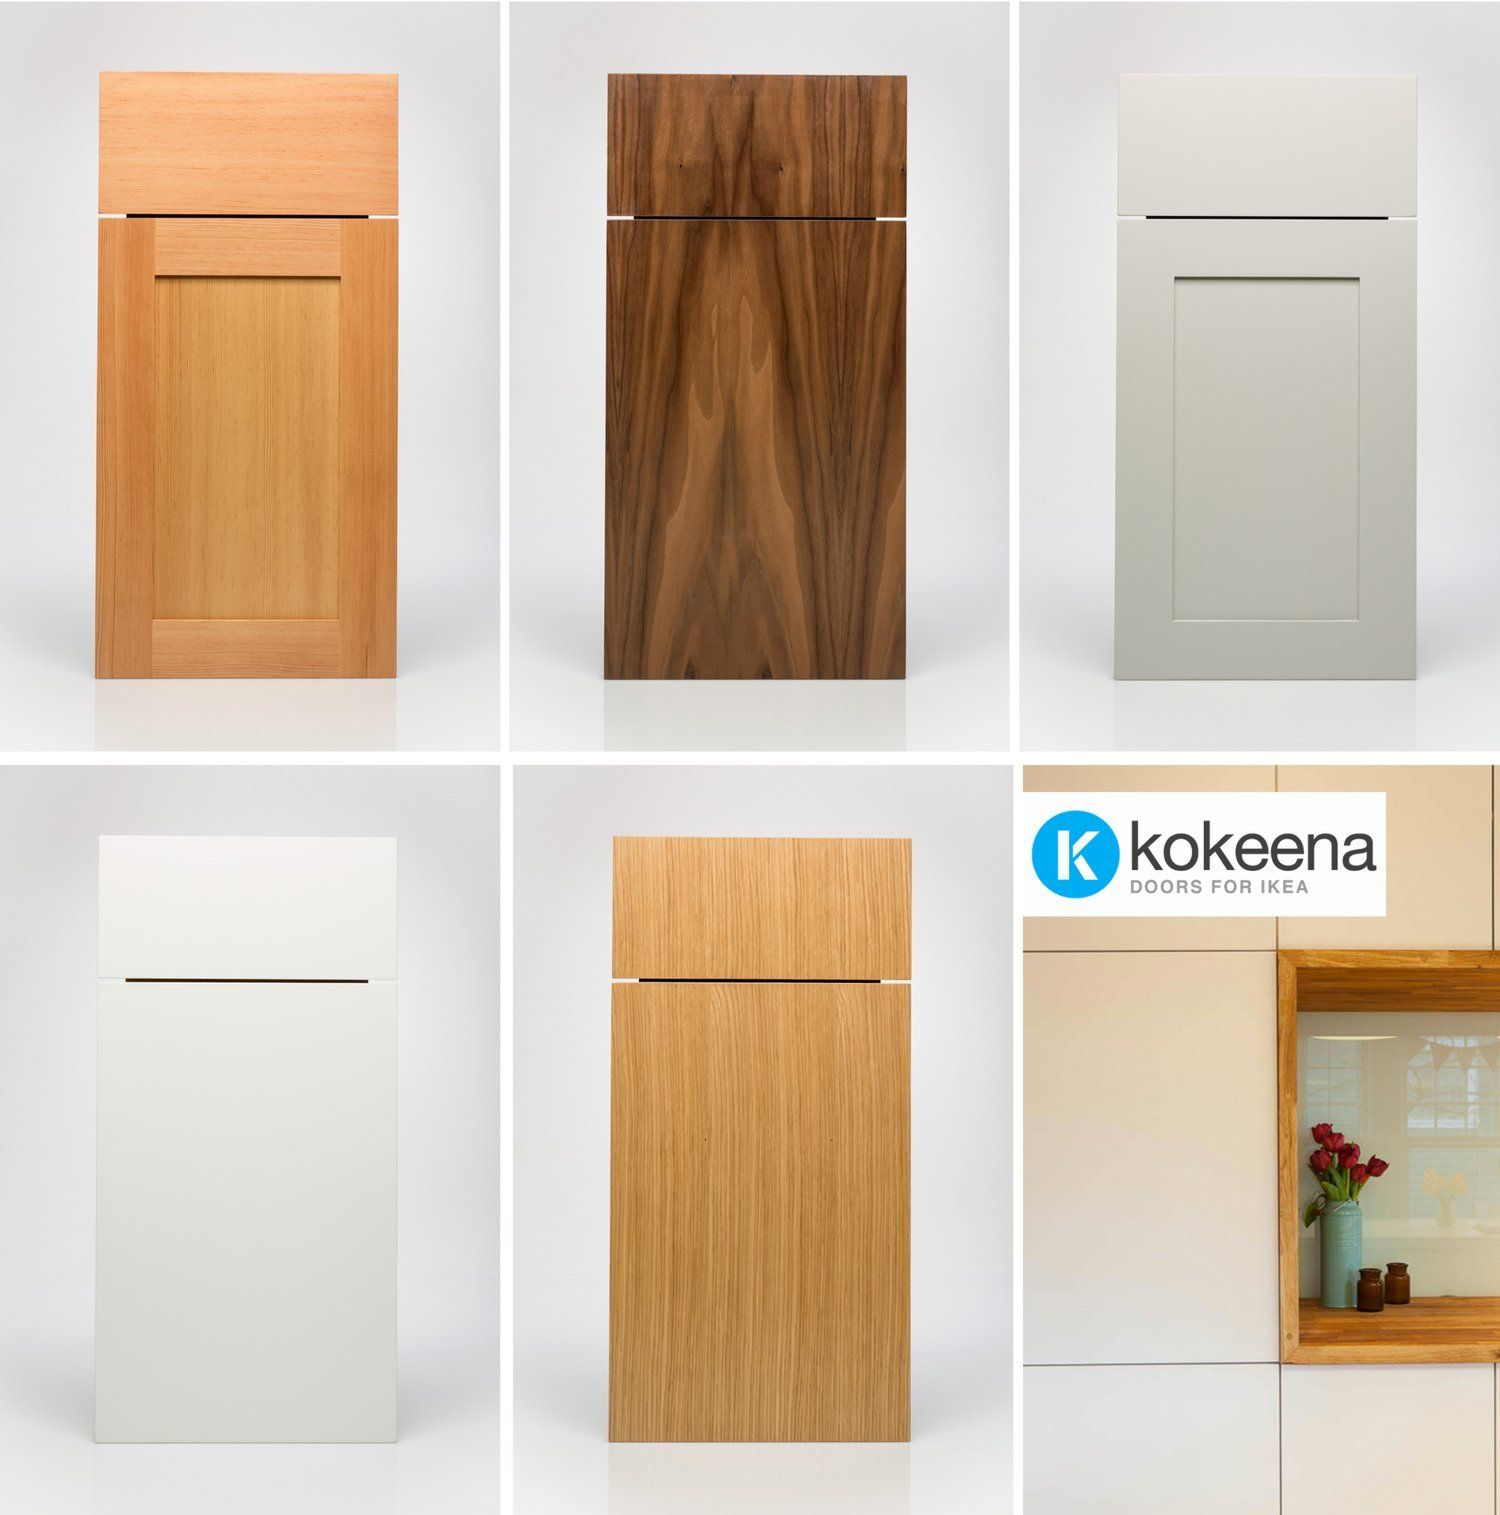 Custom Doors For Ikea Kitchen Cabinets Kokeena Real Wood Ready Made Cabinet Doors For Ikea